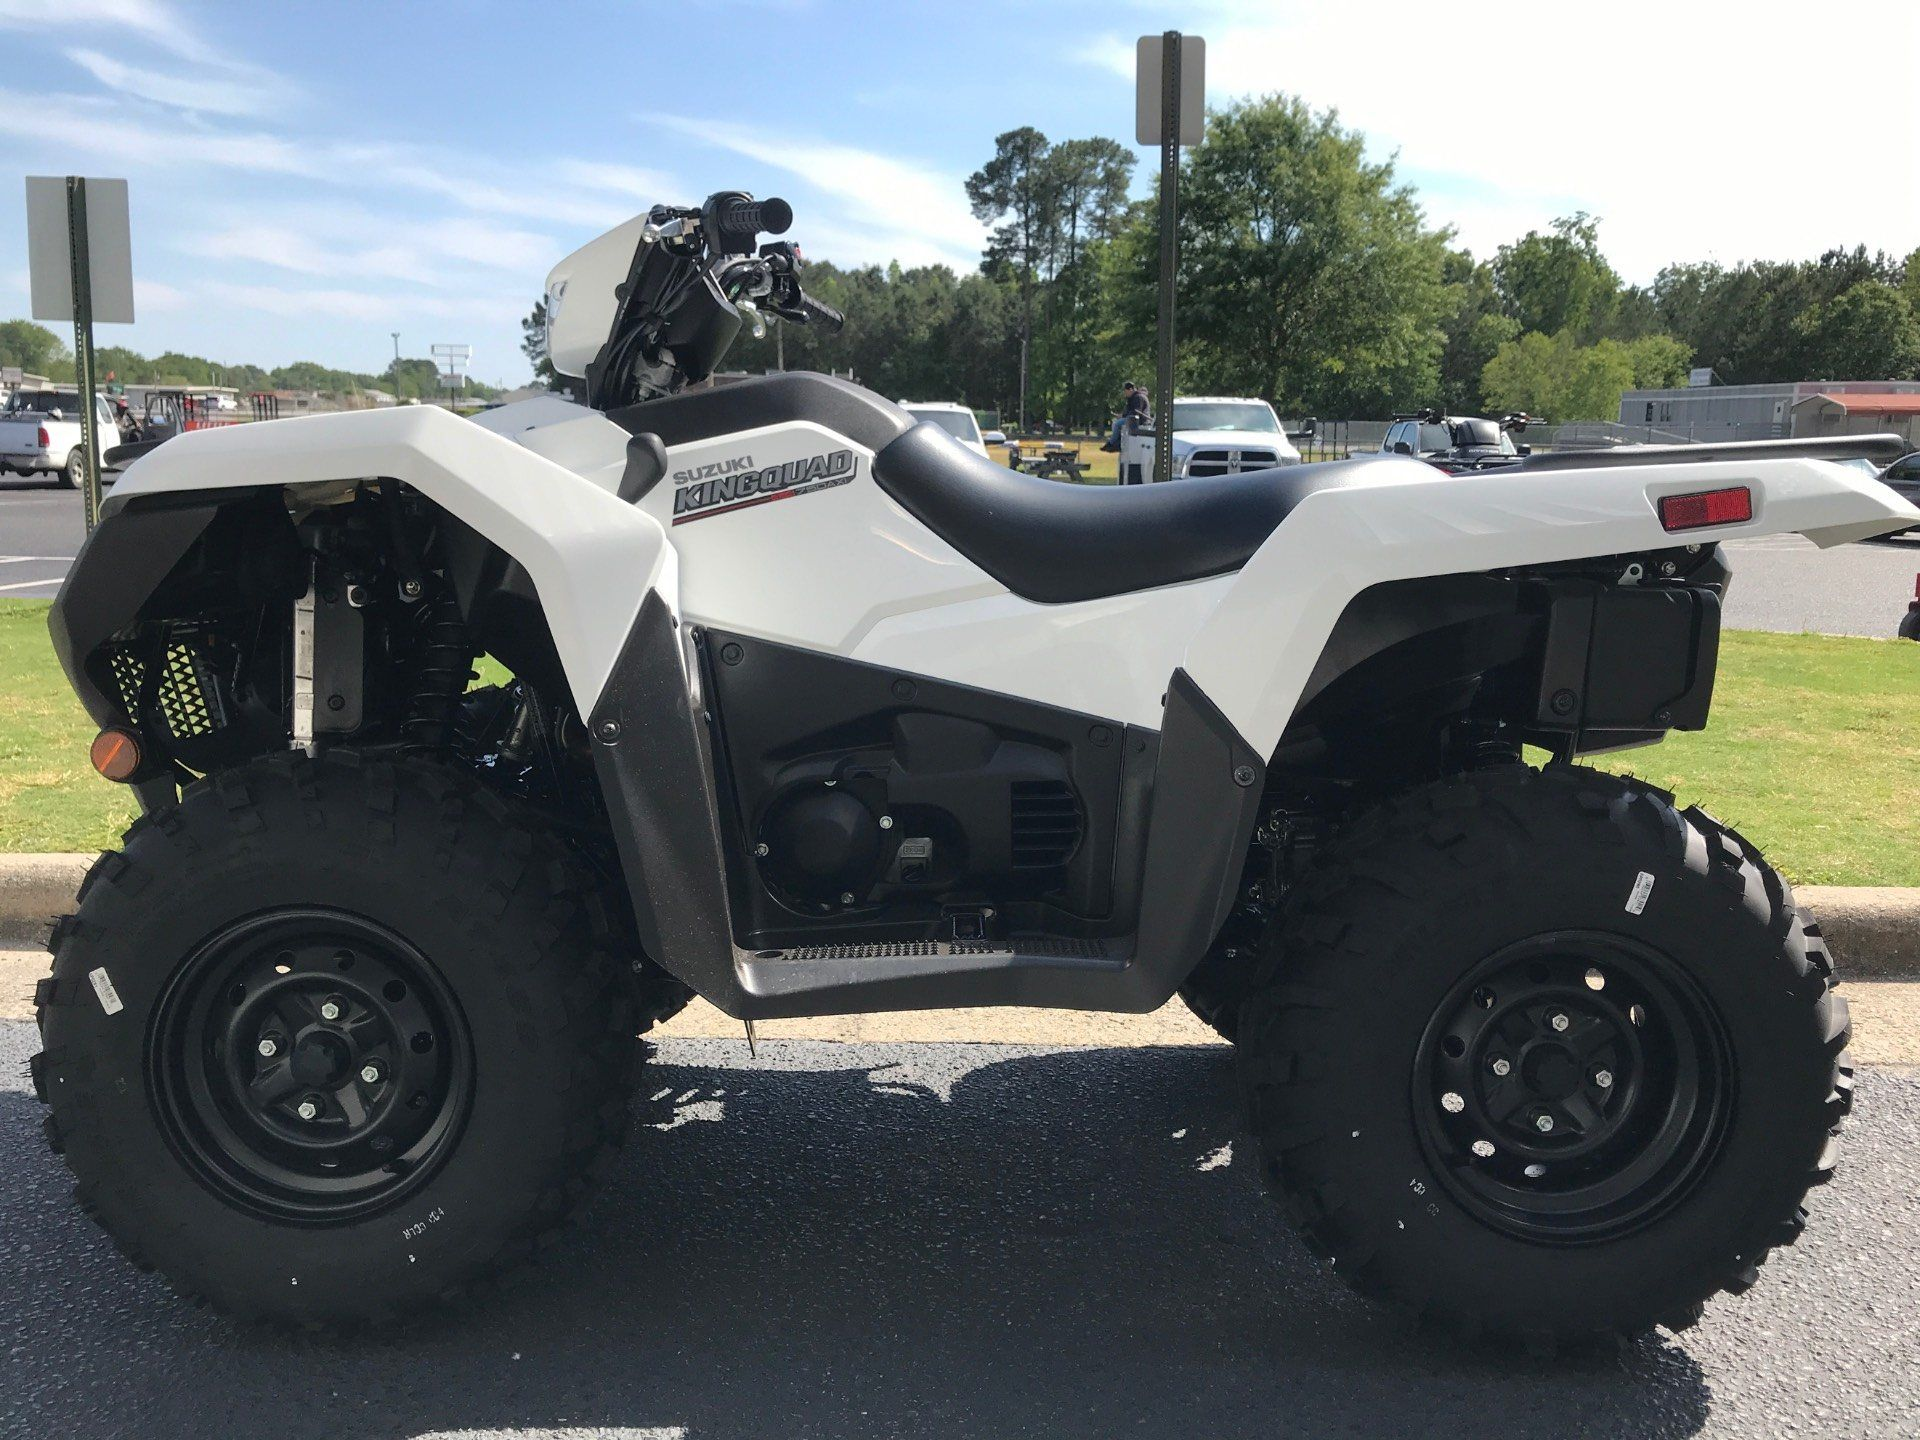 2020 Suzuki KingQuad 750AXi Power Steering in Greenville, North Carolina - Photo 5